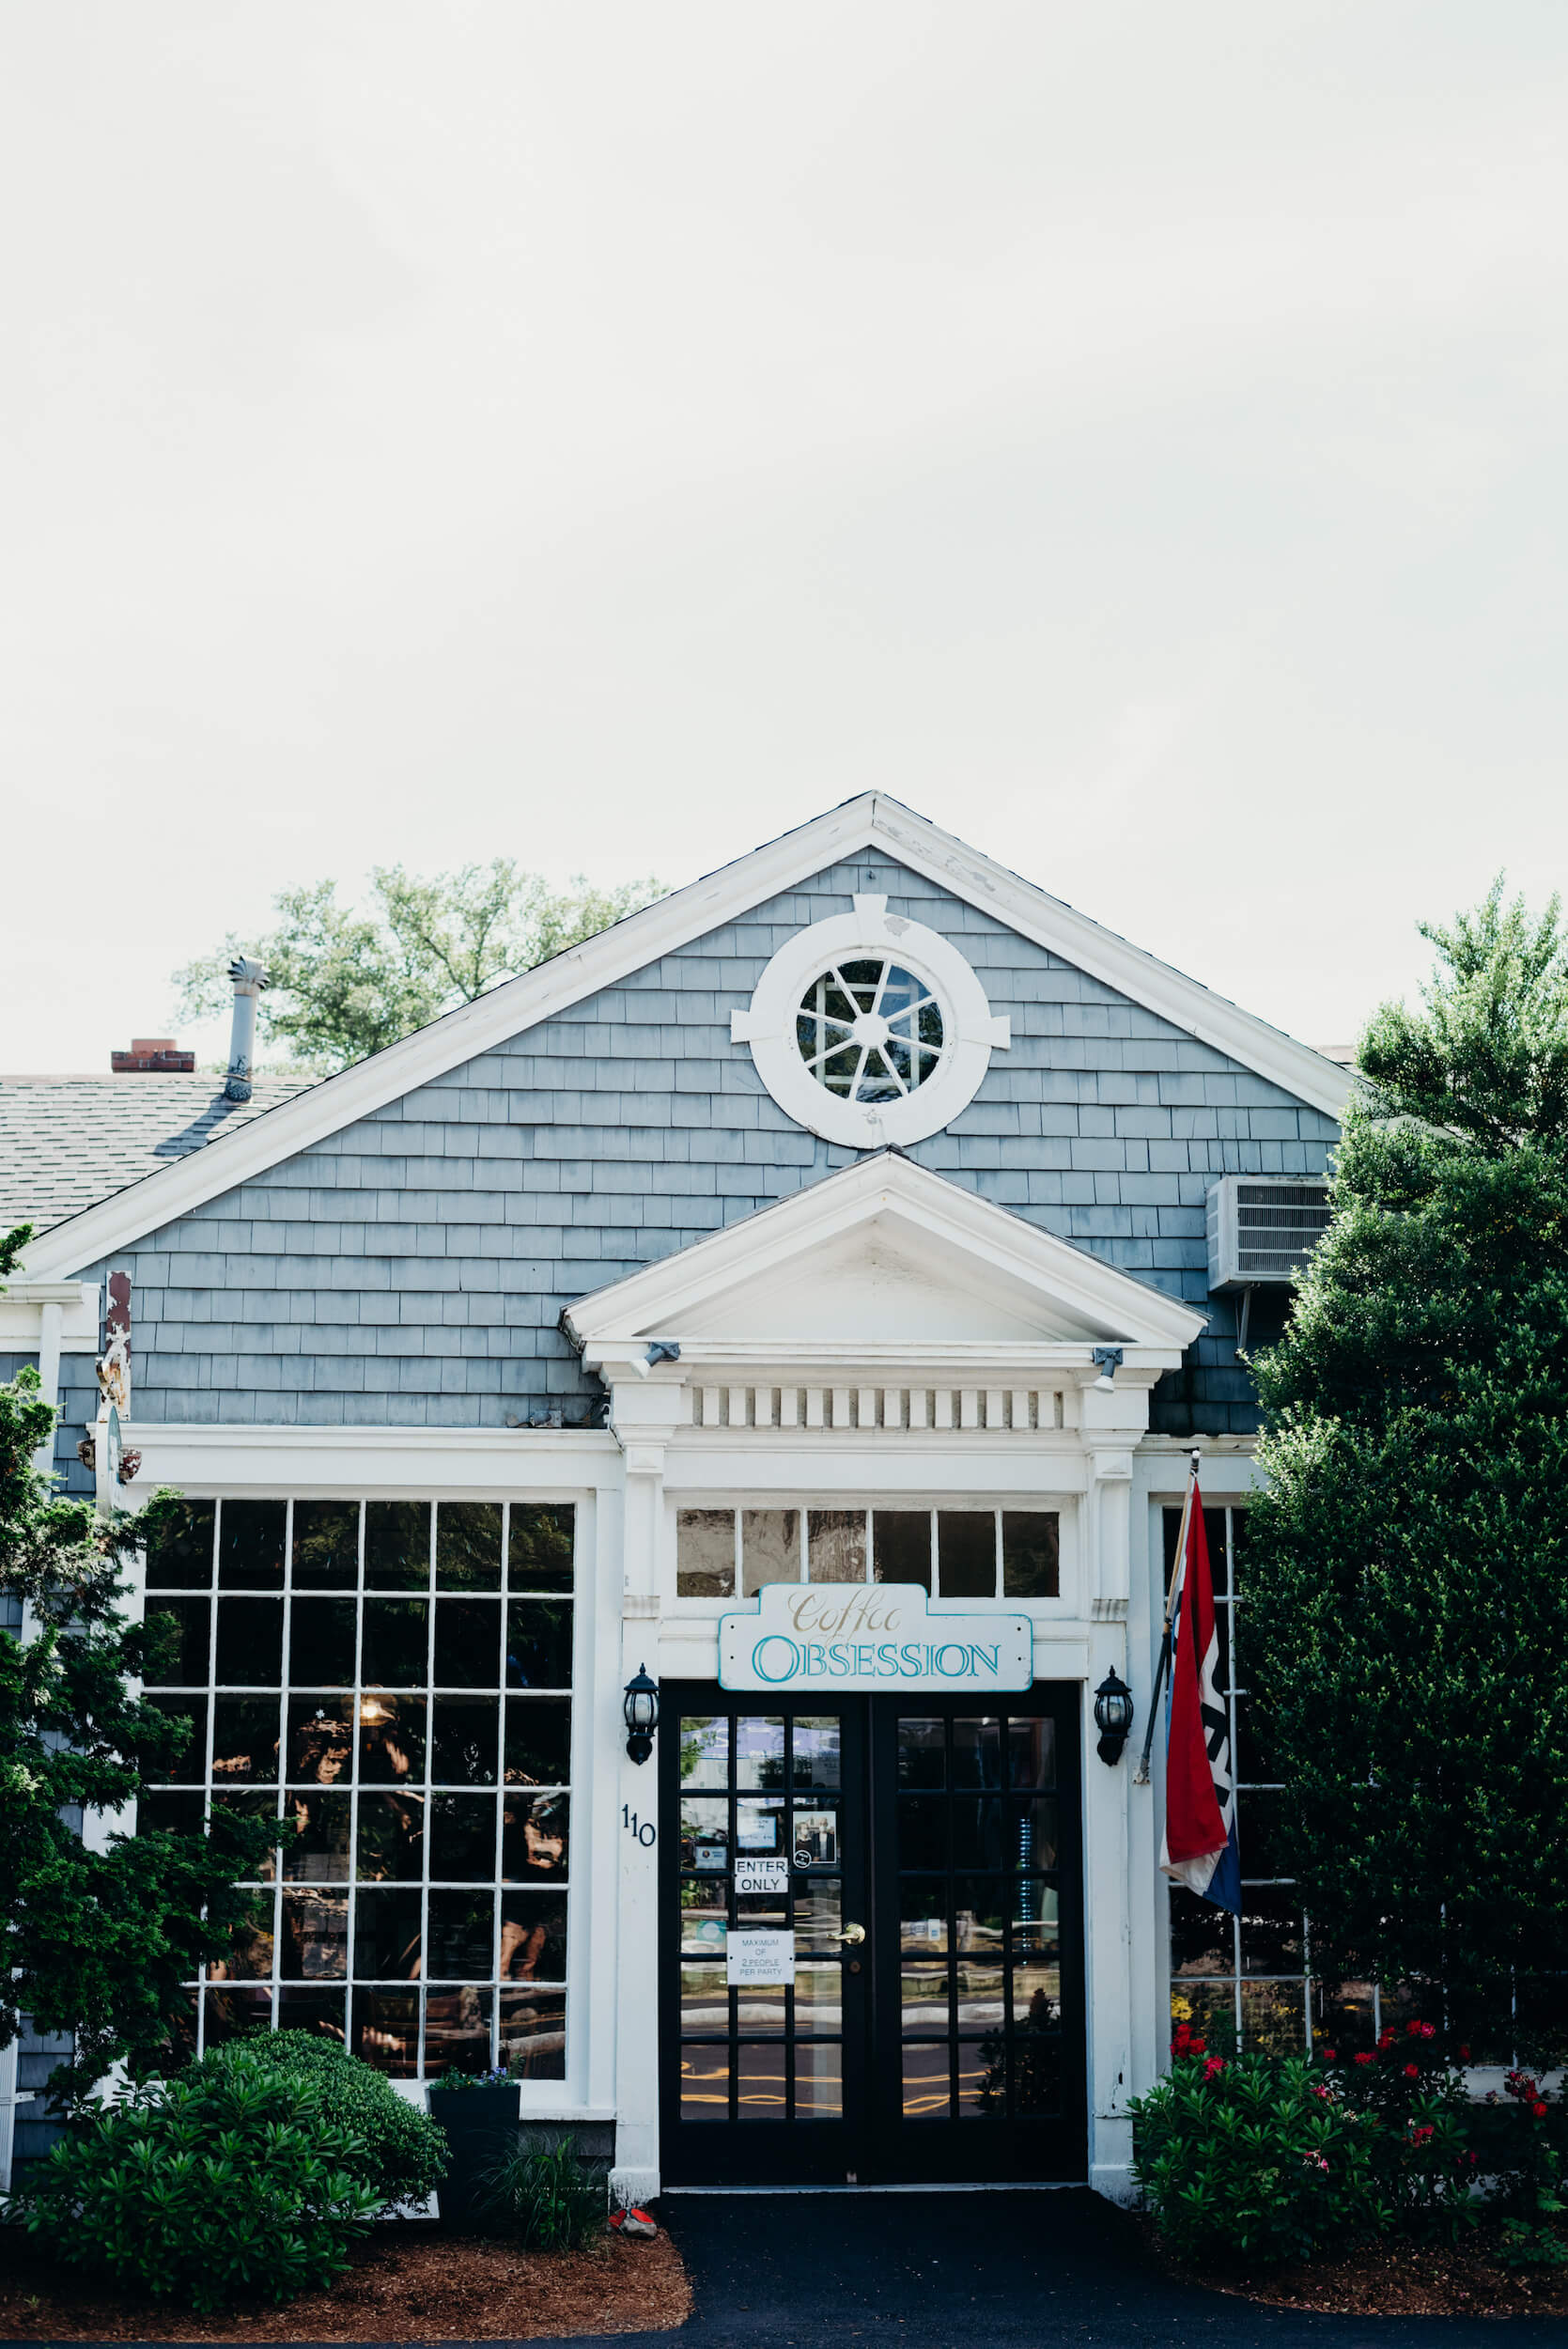 Exterior of Coffee Obsession cafe in Cape Cod, Massachusetts, USA.